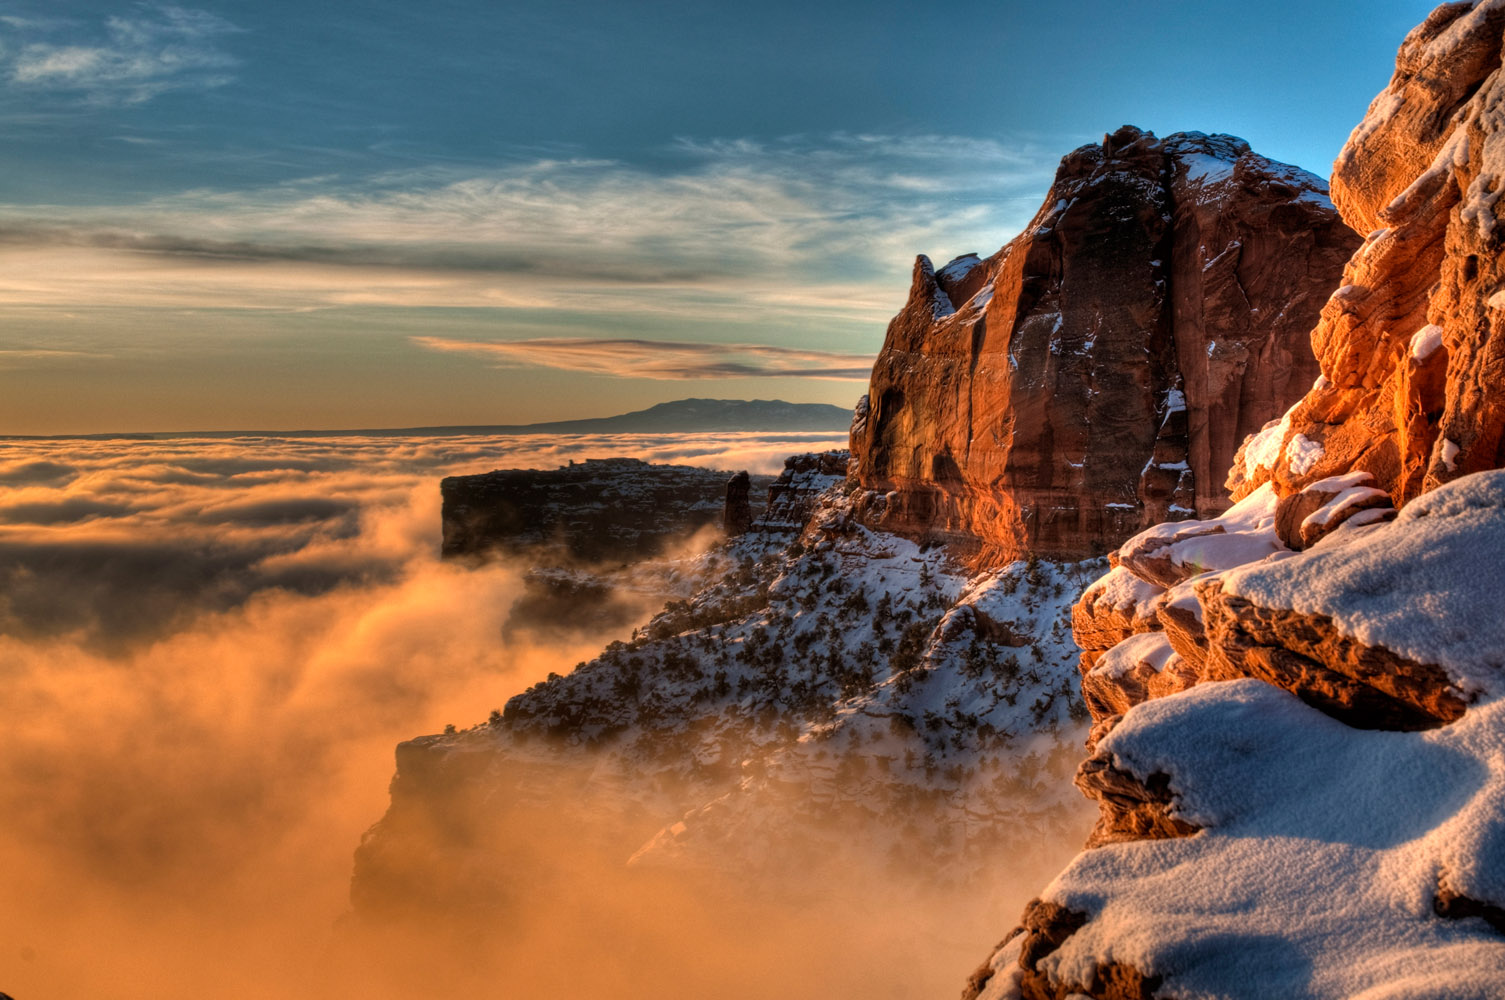 Sunrise over Mesa Arch, Canyonlands National Park, Utah